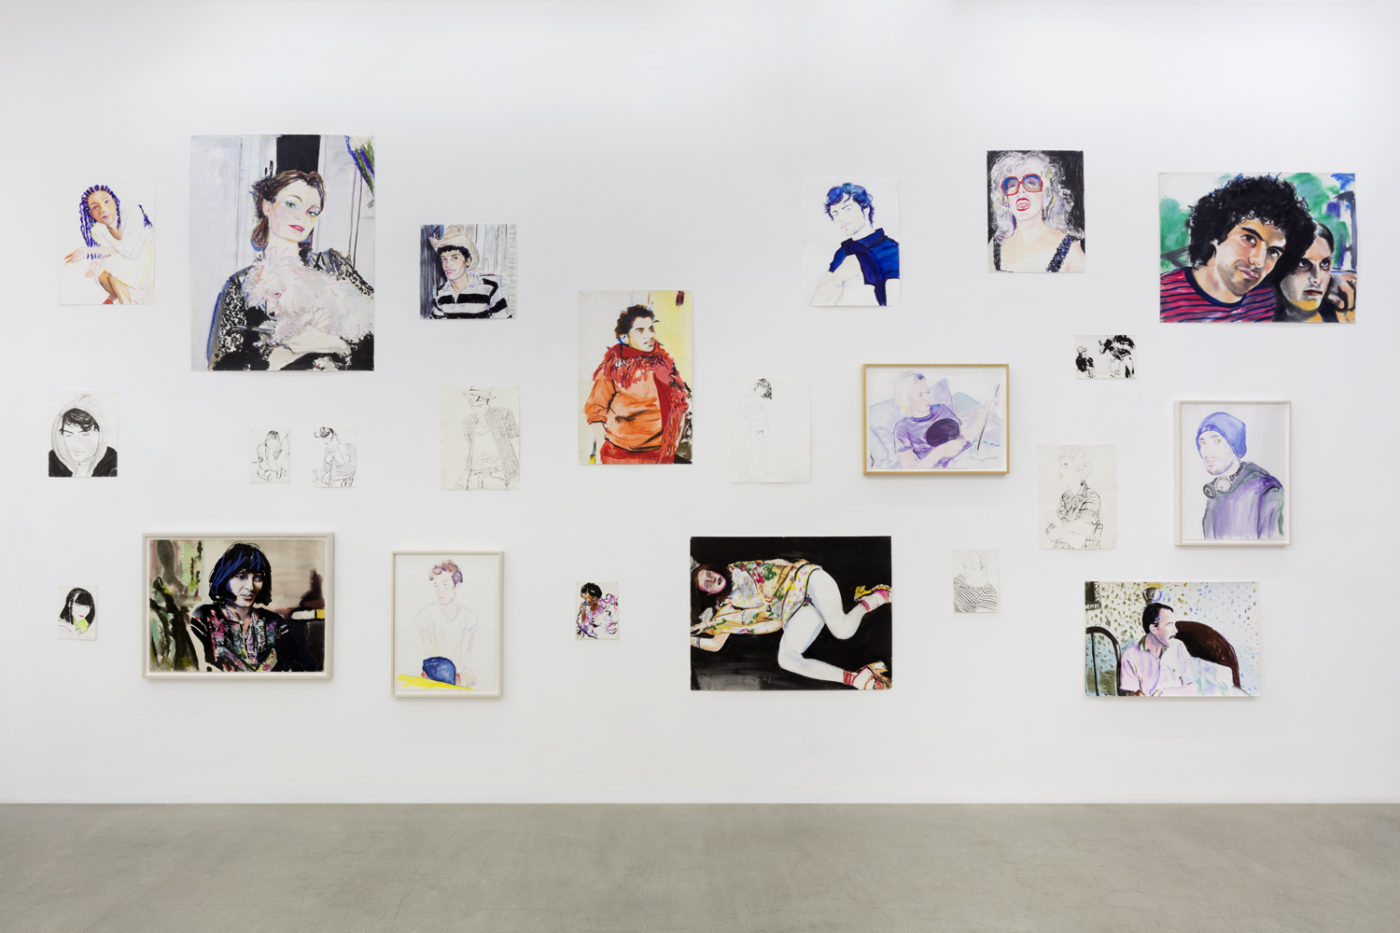 Billy Sullivan, Muses, installation view, kaufmann repetto, Milano, 2019